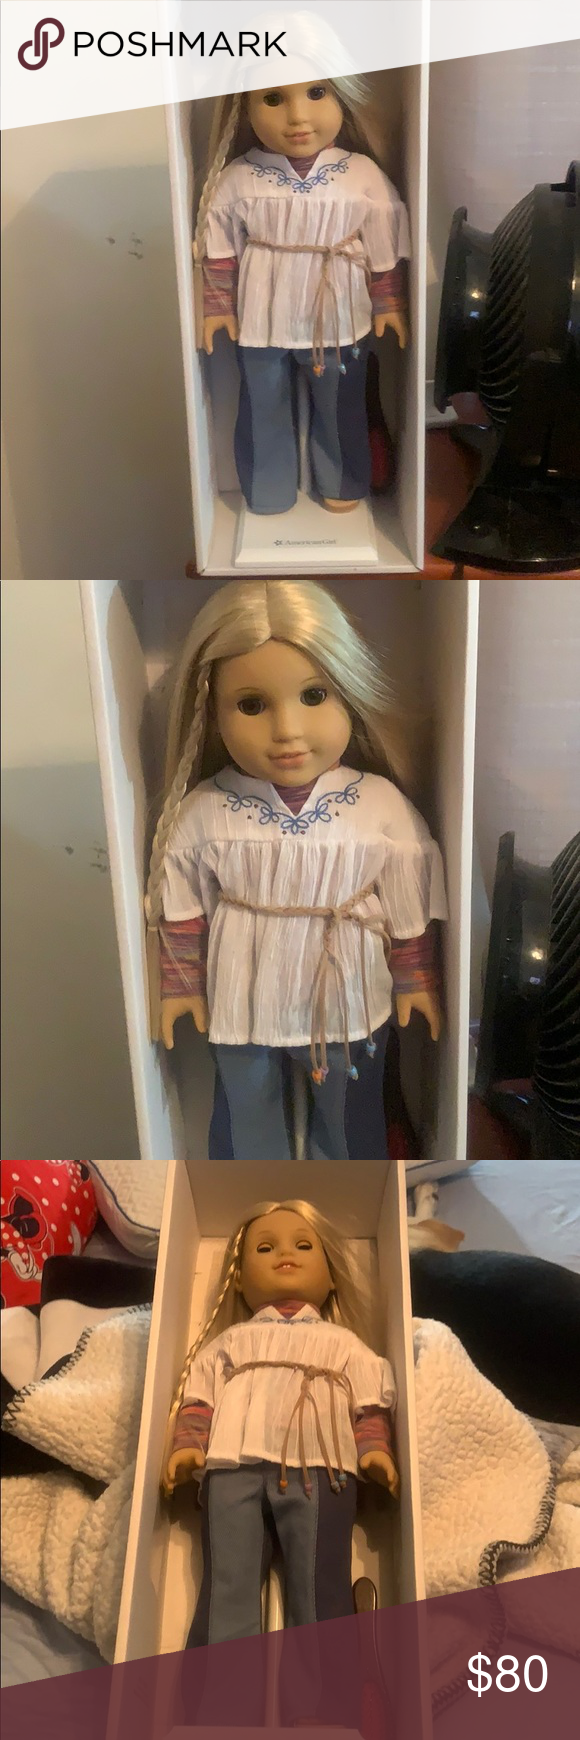 American girl doll Julie American girl doll never been taken out of the box just...